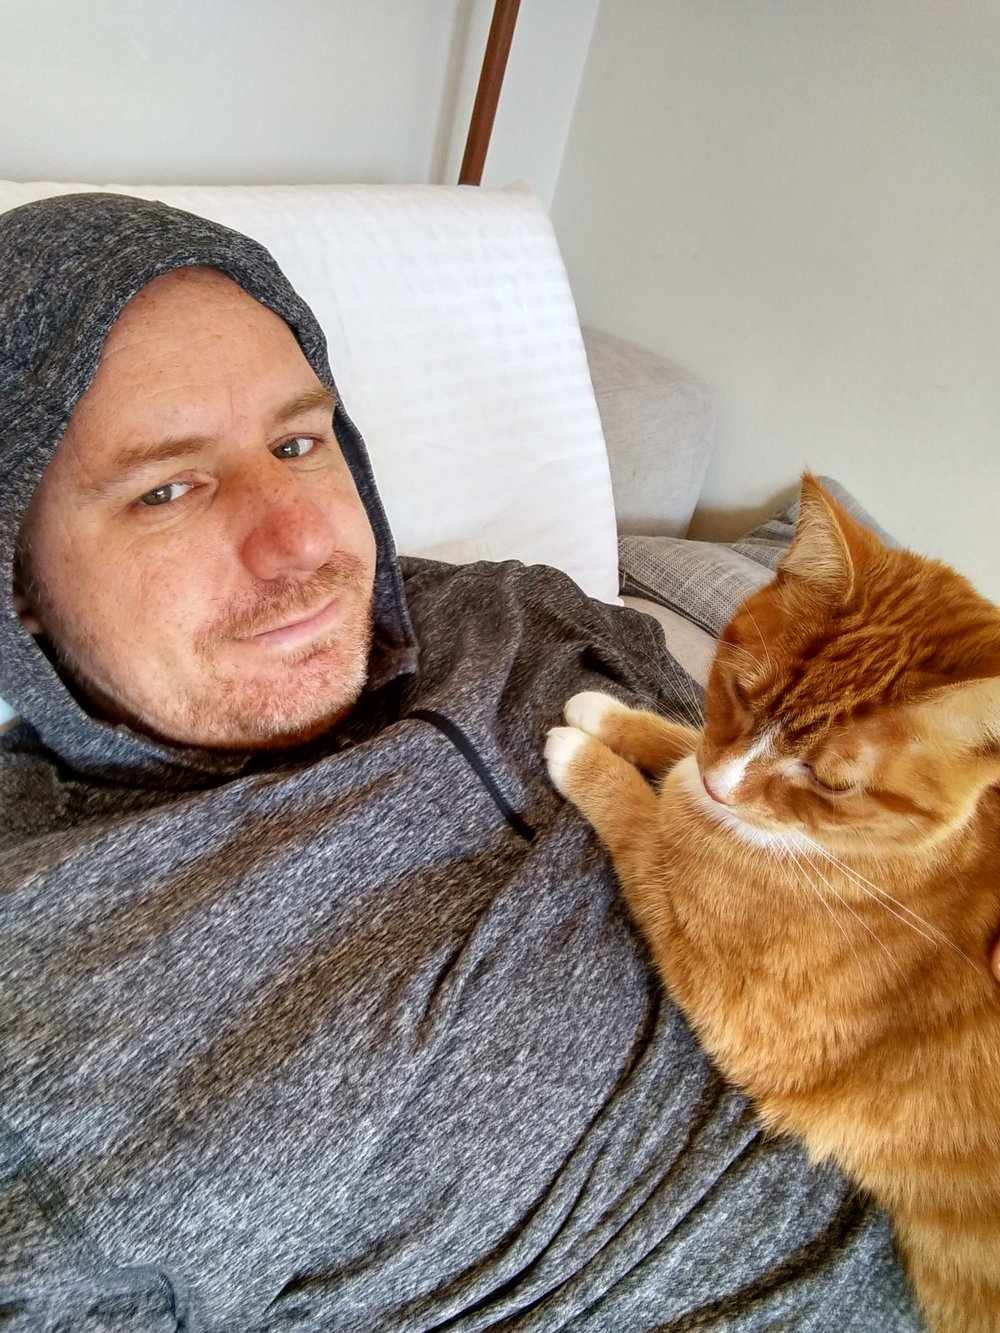 James. Cat Person In Denial (CPID).  - Husband to cat lady.  Fashion and travel photographer. Sometimes cat photographer. Likes jumping off high things, adventure and snuggling ginger cats. Can be found reluctantly taking photos of cats.